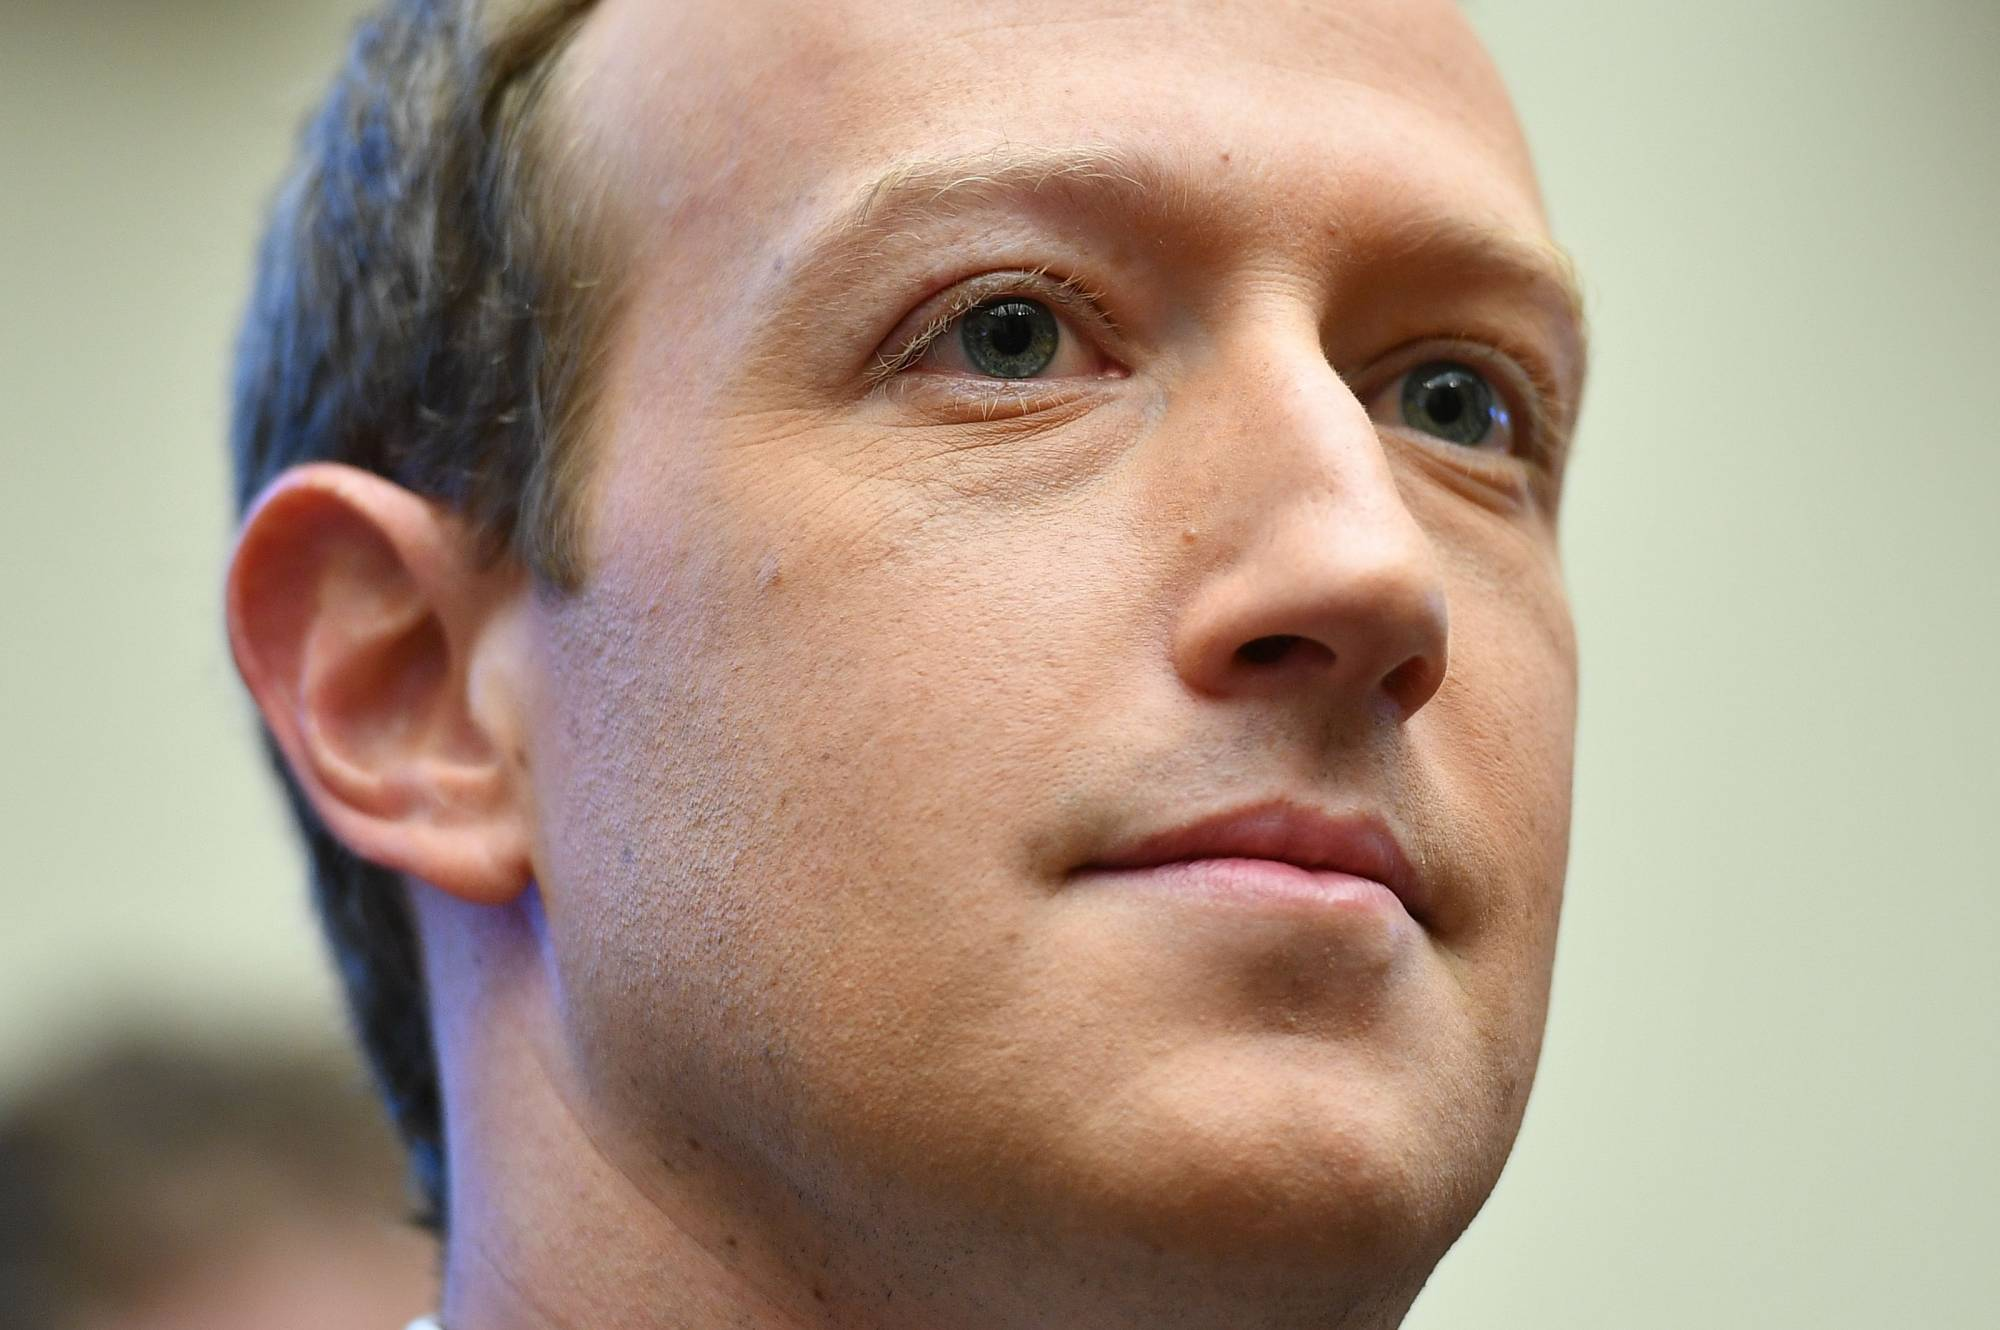 Last week, Facebook CEO Mark Zuckerberg told his employees that advertisers will eventually return and they will not change their policies under duress.   AFP-JIJI